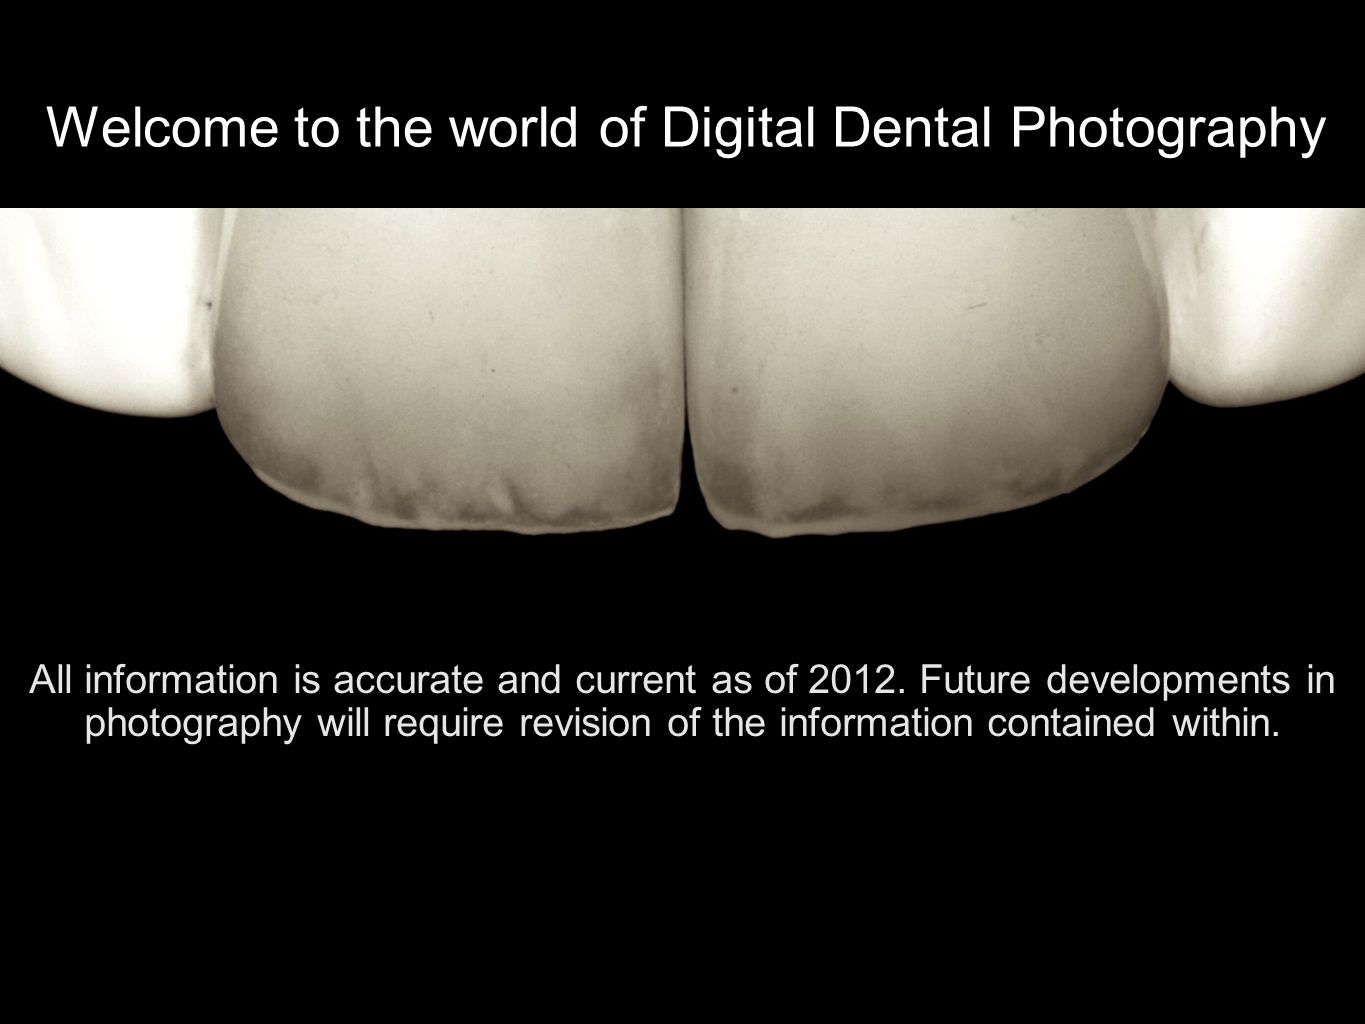 Welcome to the world of Digital Dental Photography